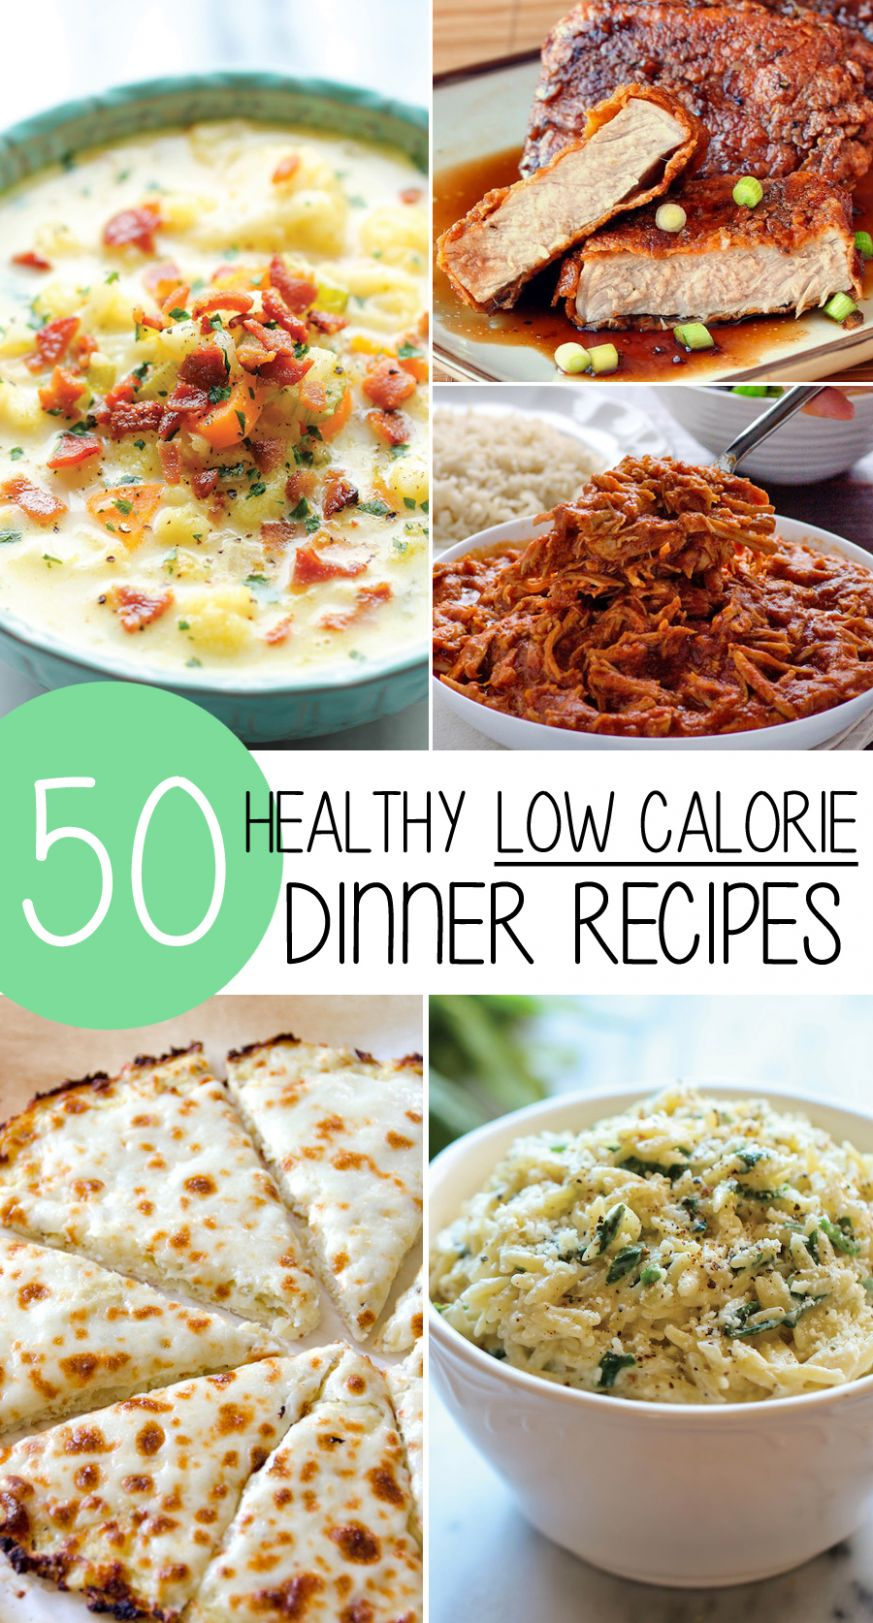 9 Healthy Low Calorie Weight Loss Dinner Recipes! – TrimmedandToned - Simple Recipes Low Calorie